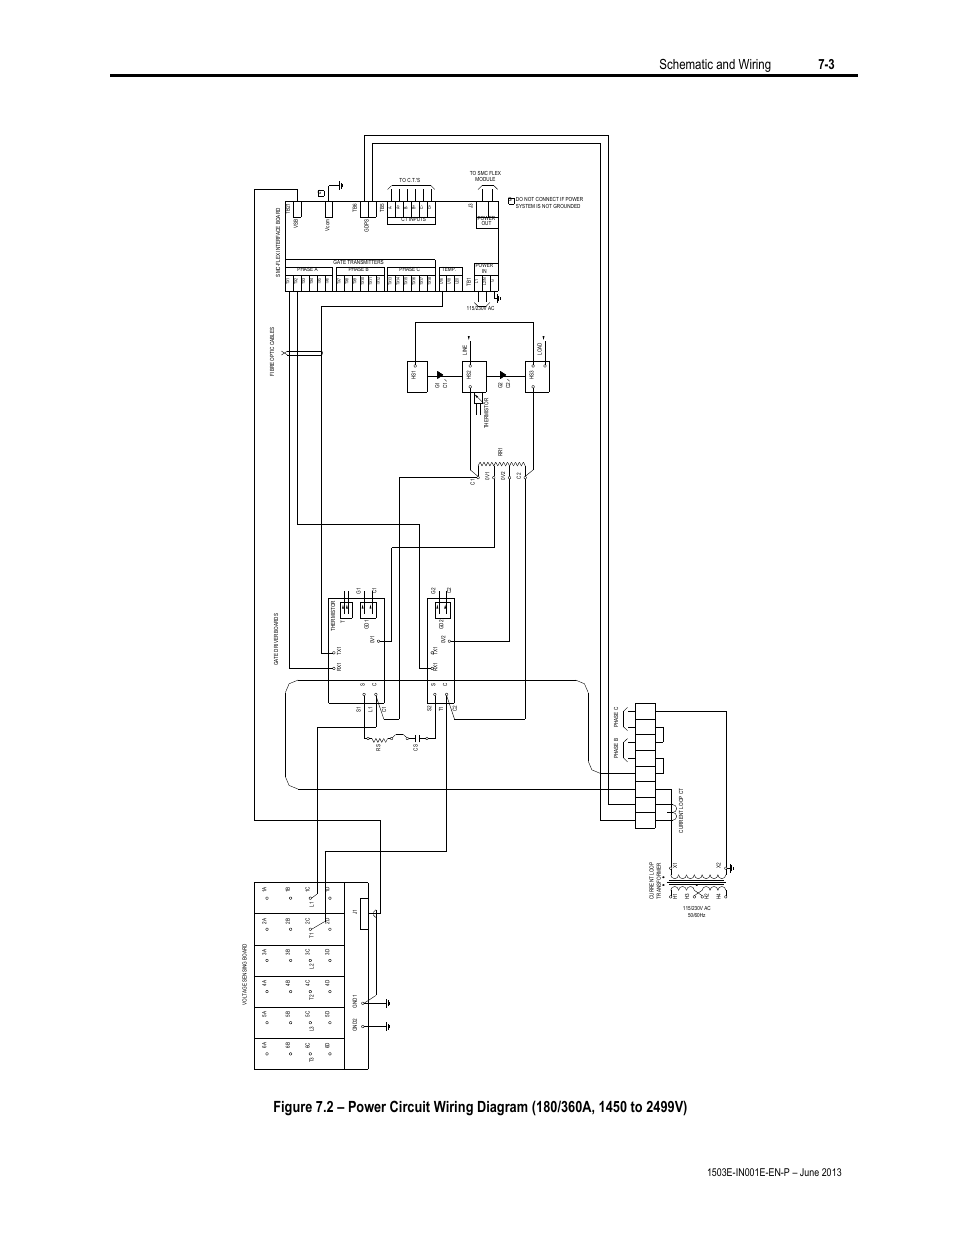 schematic and wiring 7-3 | rockwell automation mv smc flex oem components  user manual